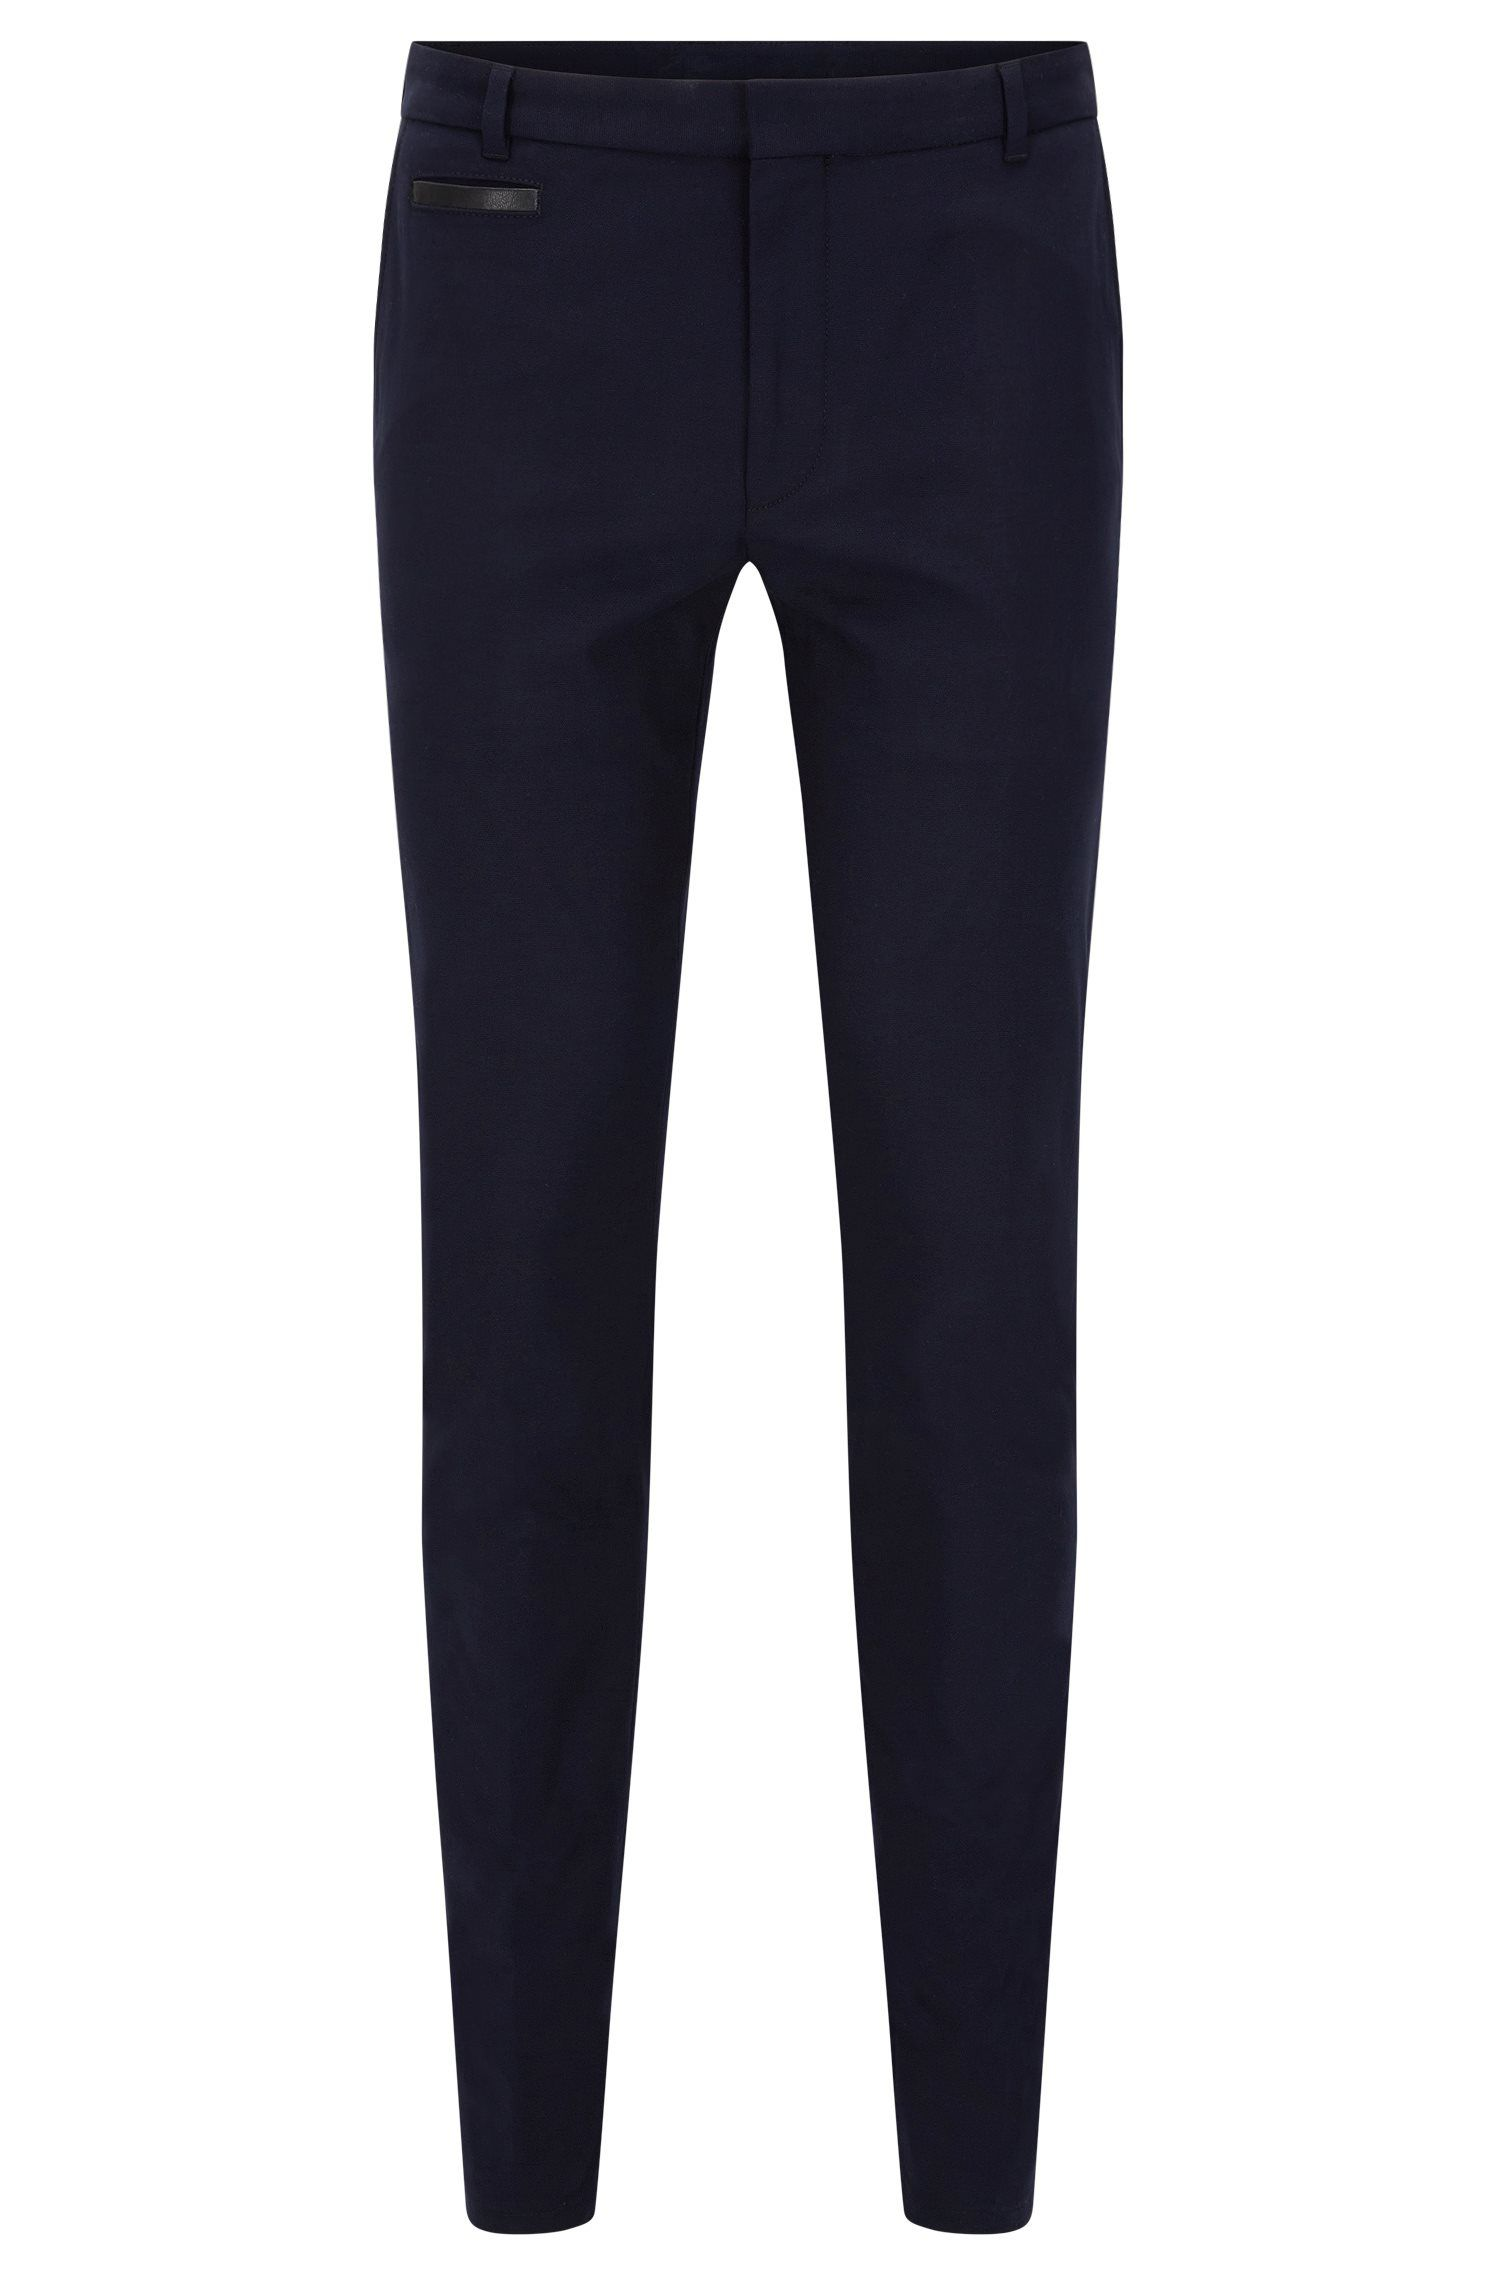 Extra-slim-fit trousers in two-tone fabric